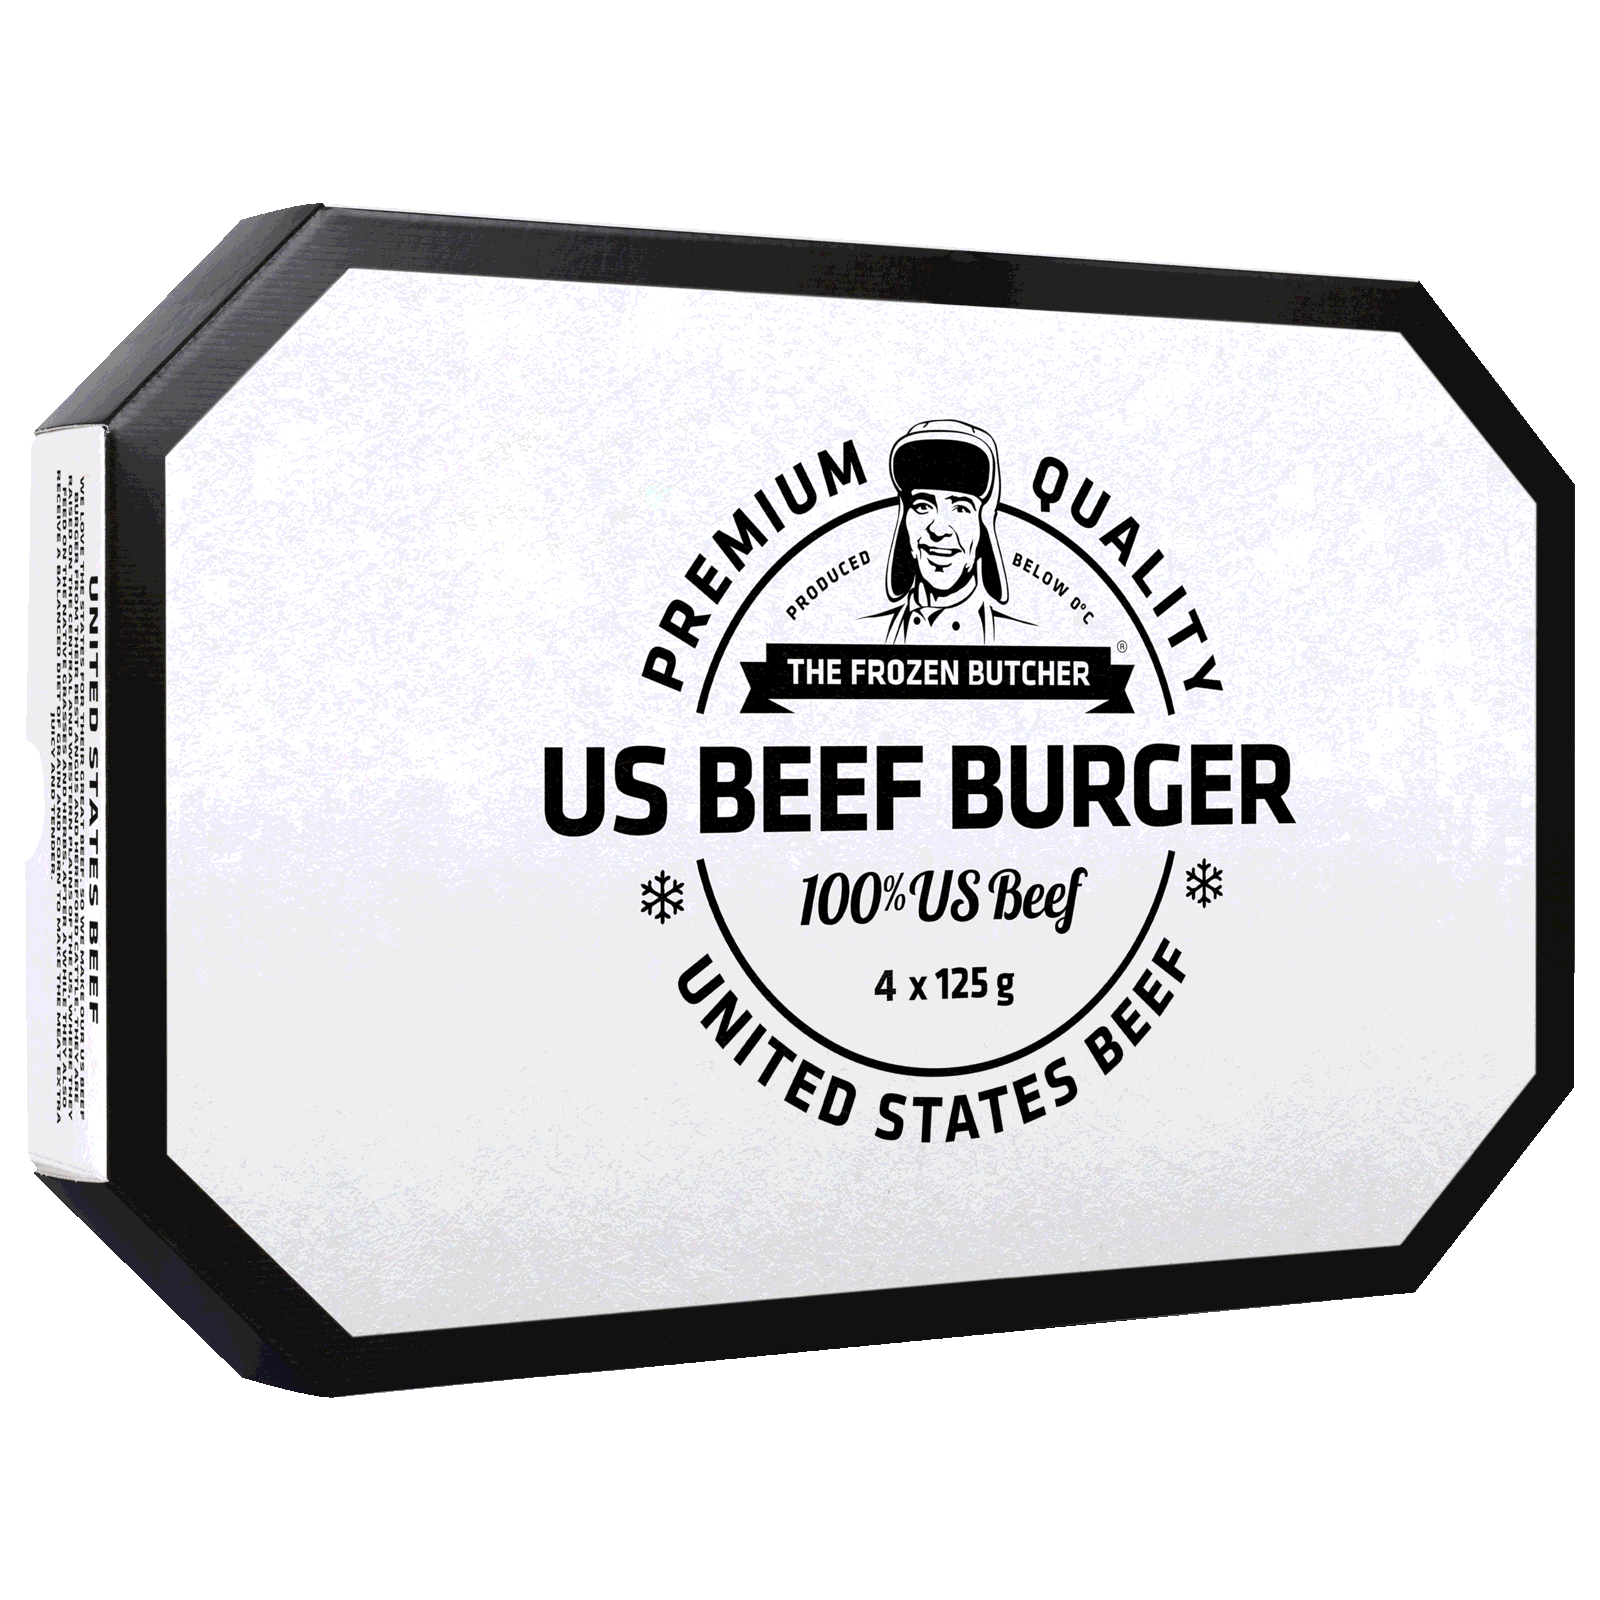 The Frozen Butcher US Beef Burger 4x125g